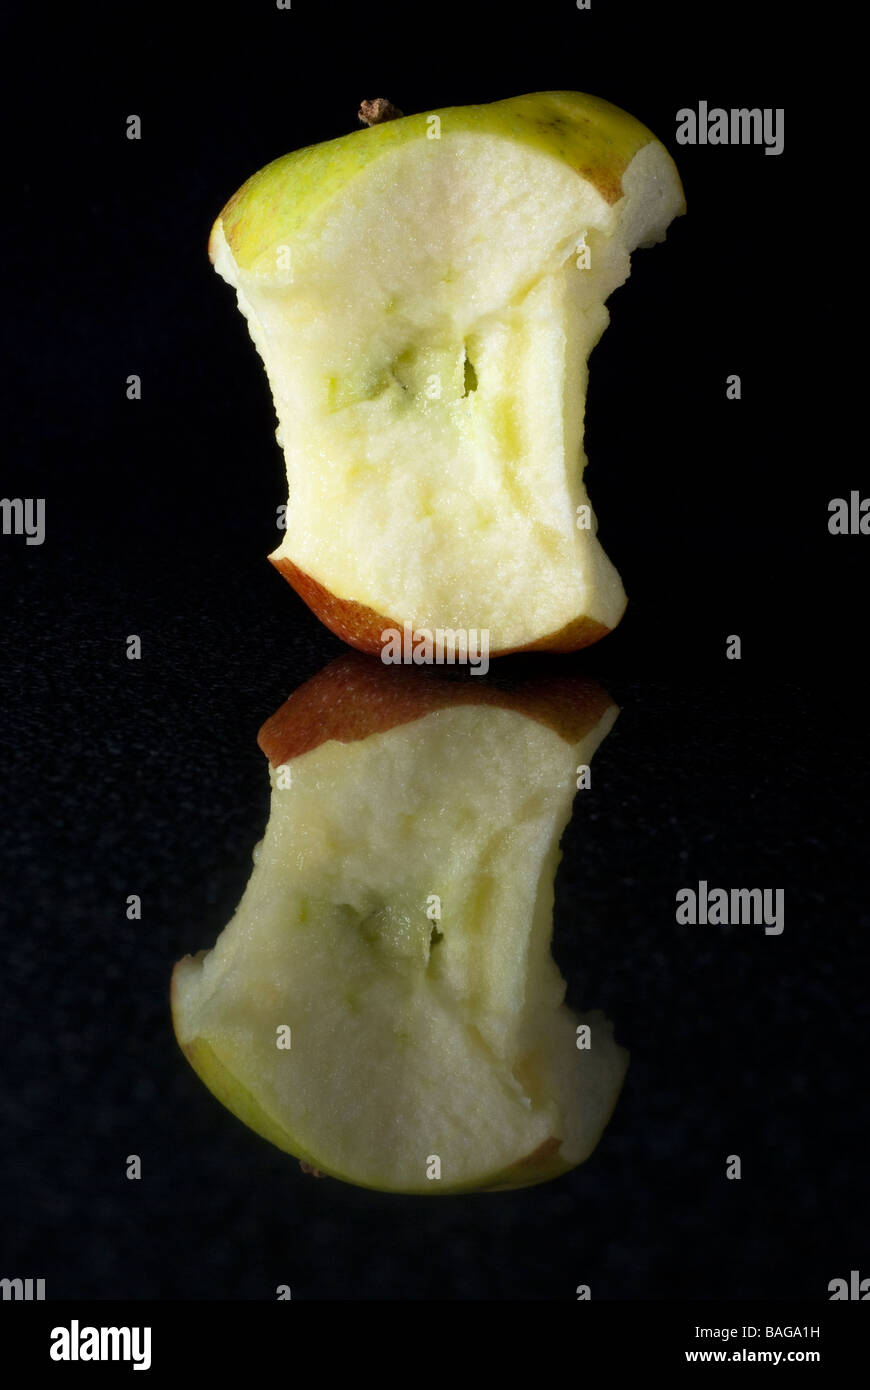 Core of a braeburn apple on a polished black granite surface - Stock Image